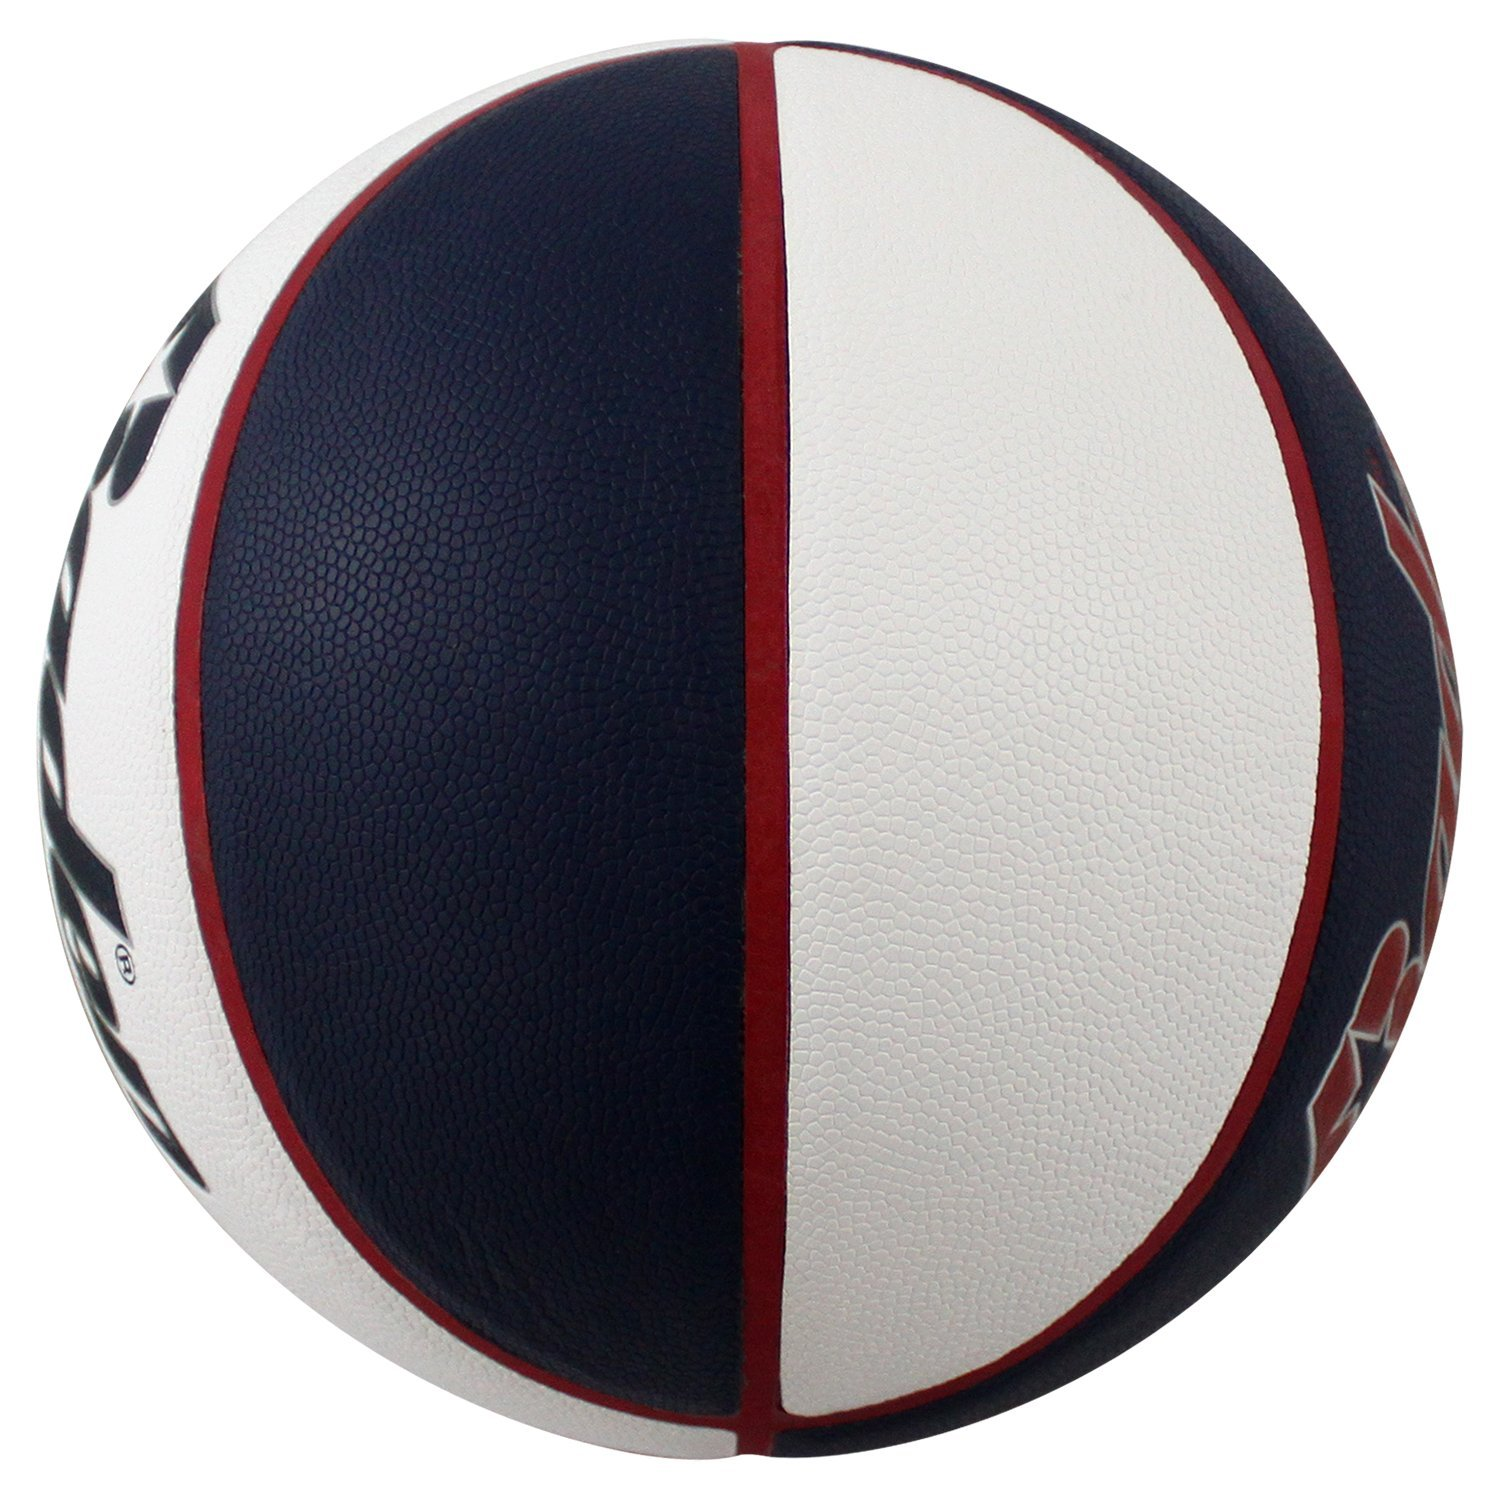 47f7705810e Baden Contender Indoor/Outdoor Composite Basketball | Team Immortal |  Forever Fit | Fitness Products